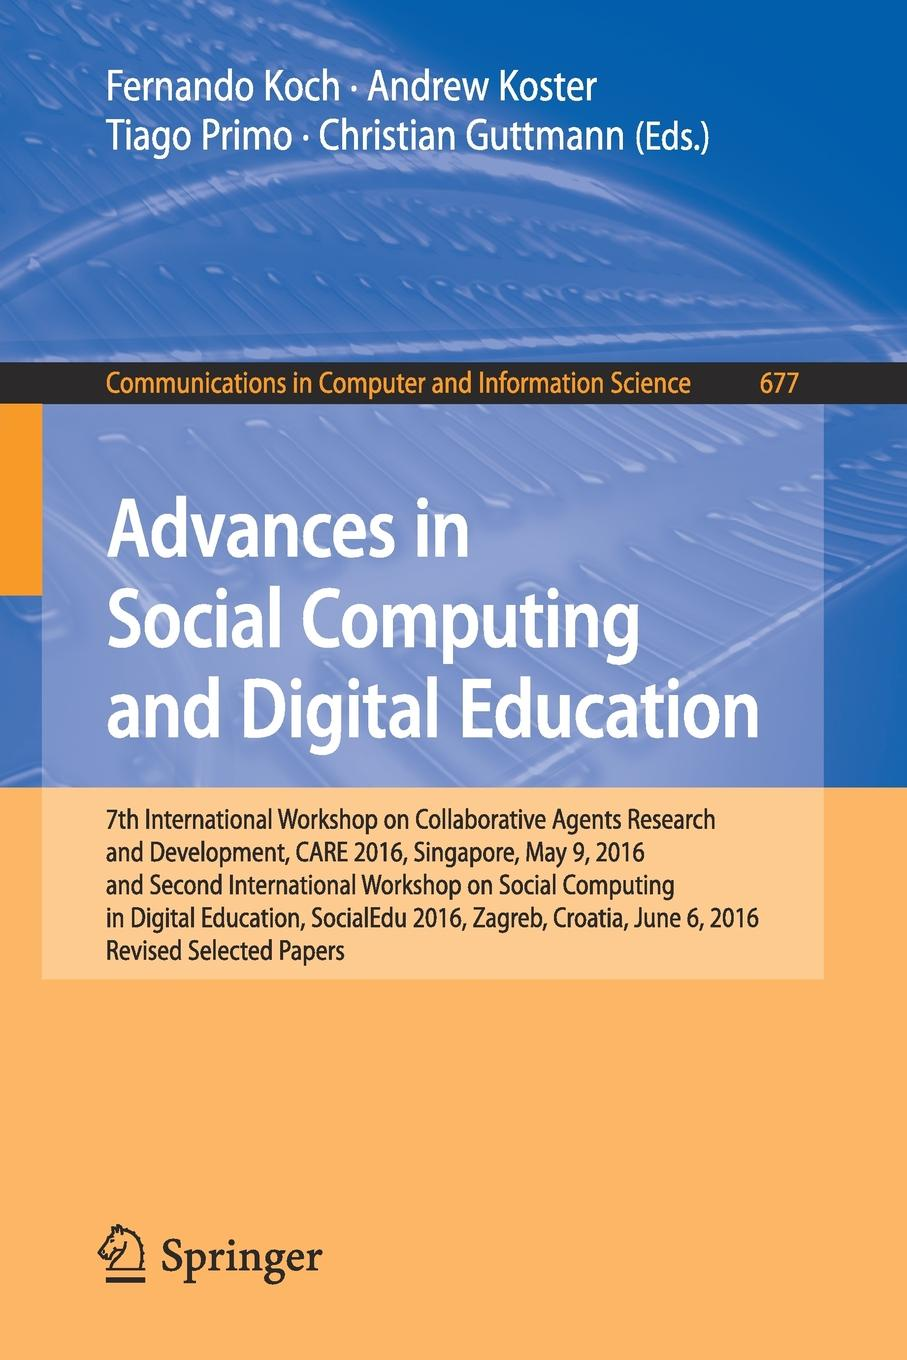 Advances in Social Computing and Digital Education. 7th International Workshop on Collaborative Agents Research and Development, CARE 2016, Singapore, May 9, 2016 and Second International Workshop on Social Computing in Digital Education, SocialEd... citizenship education and social development in zambia pb